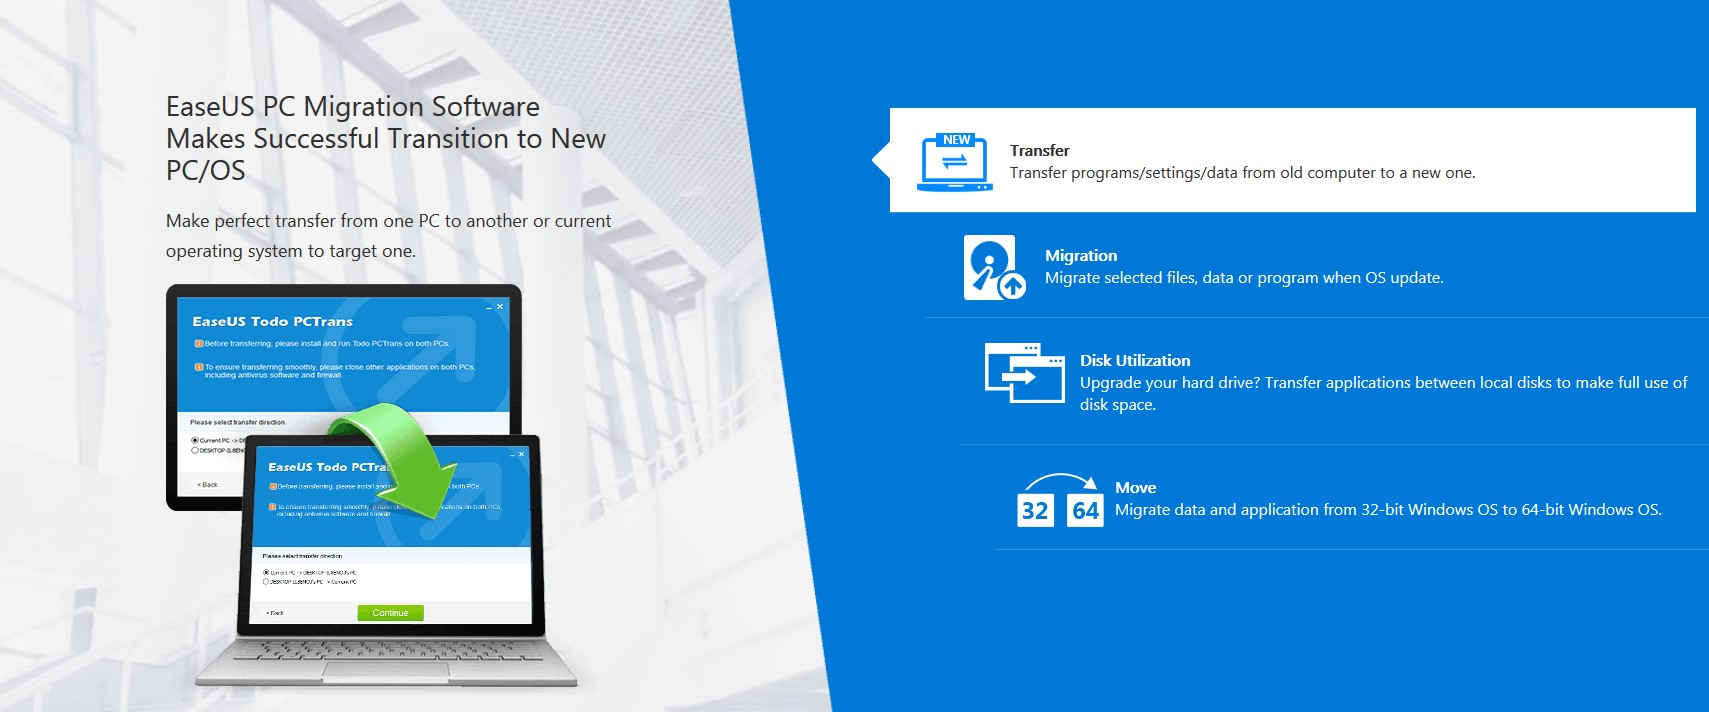 EaseUS PC Migration Software Makes Successful Transition to New PC